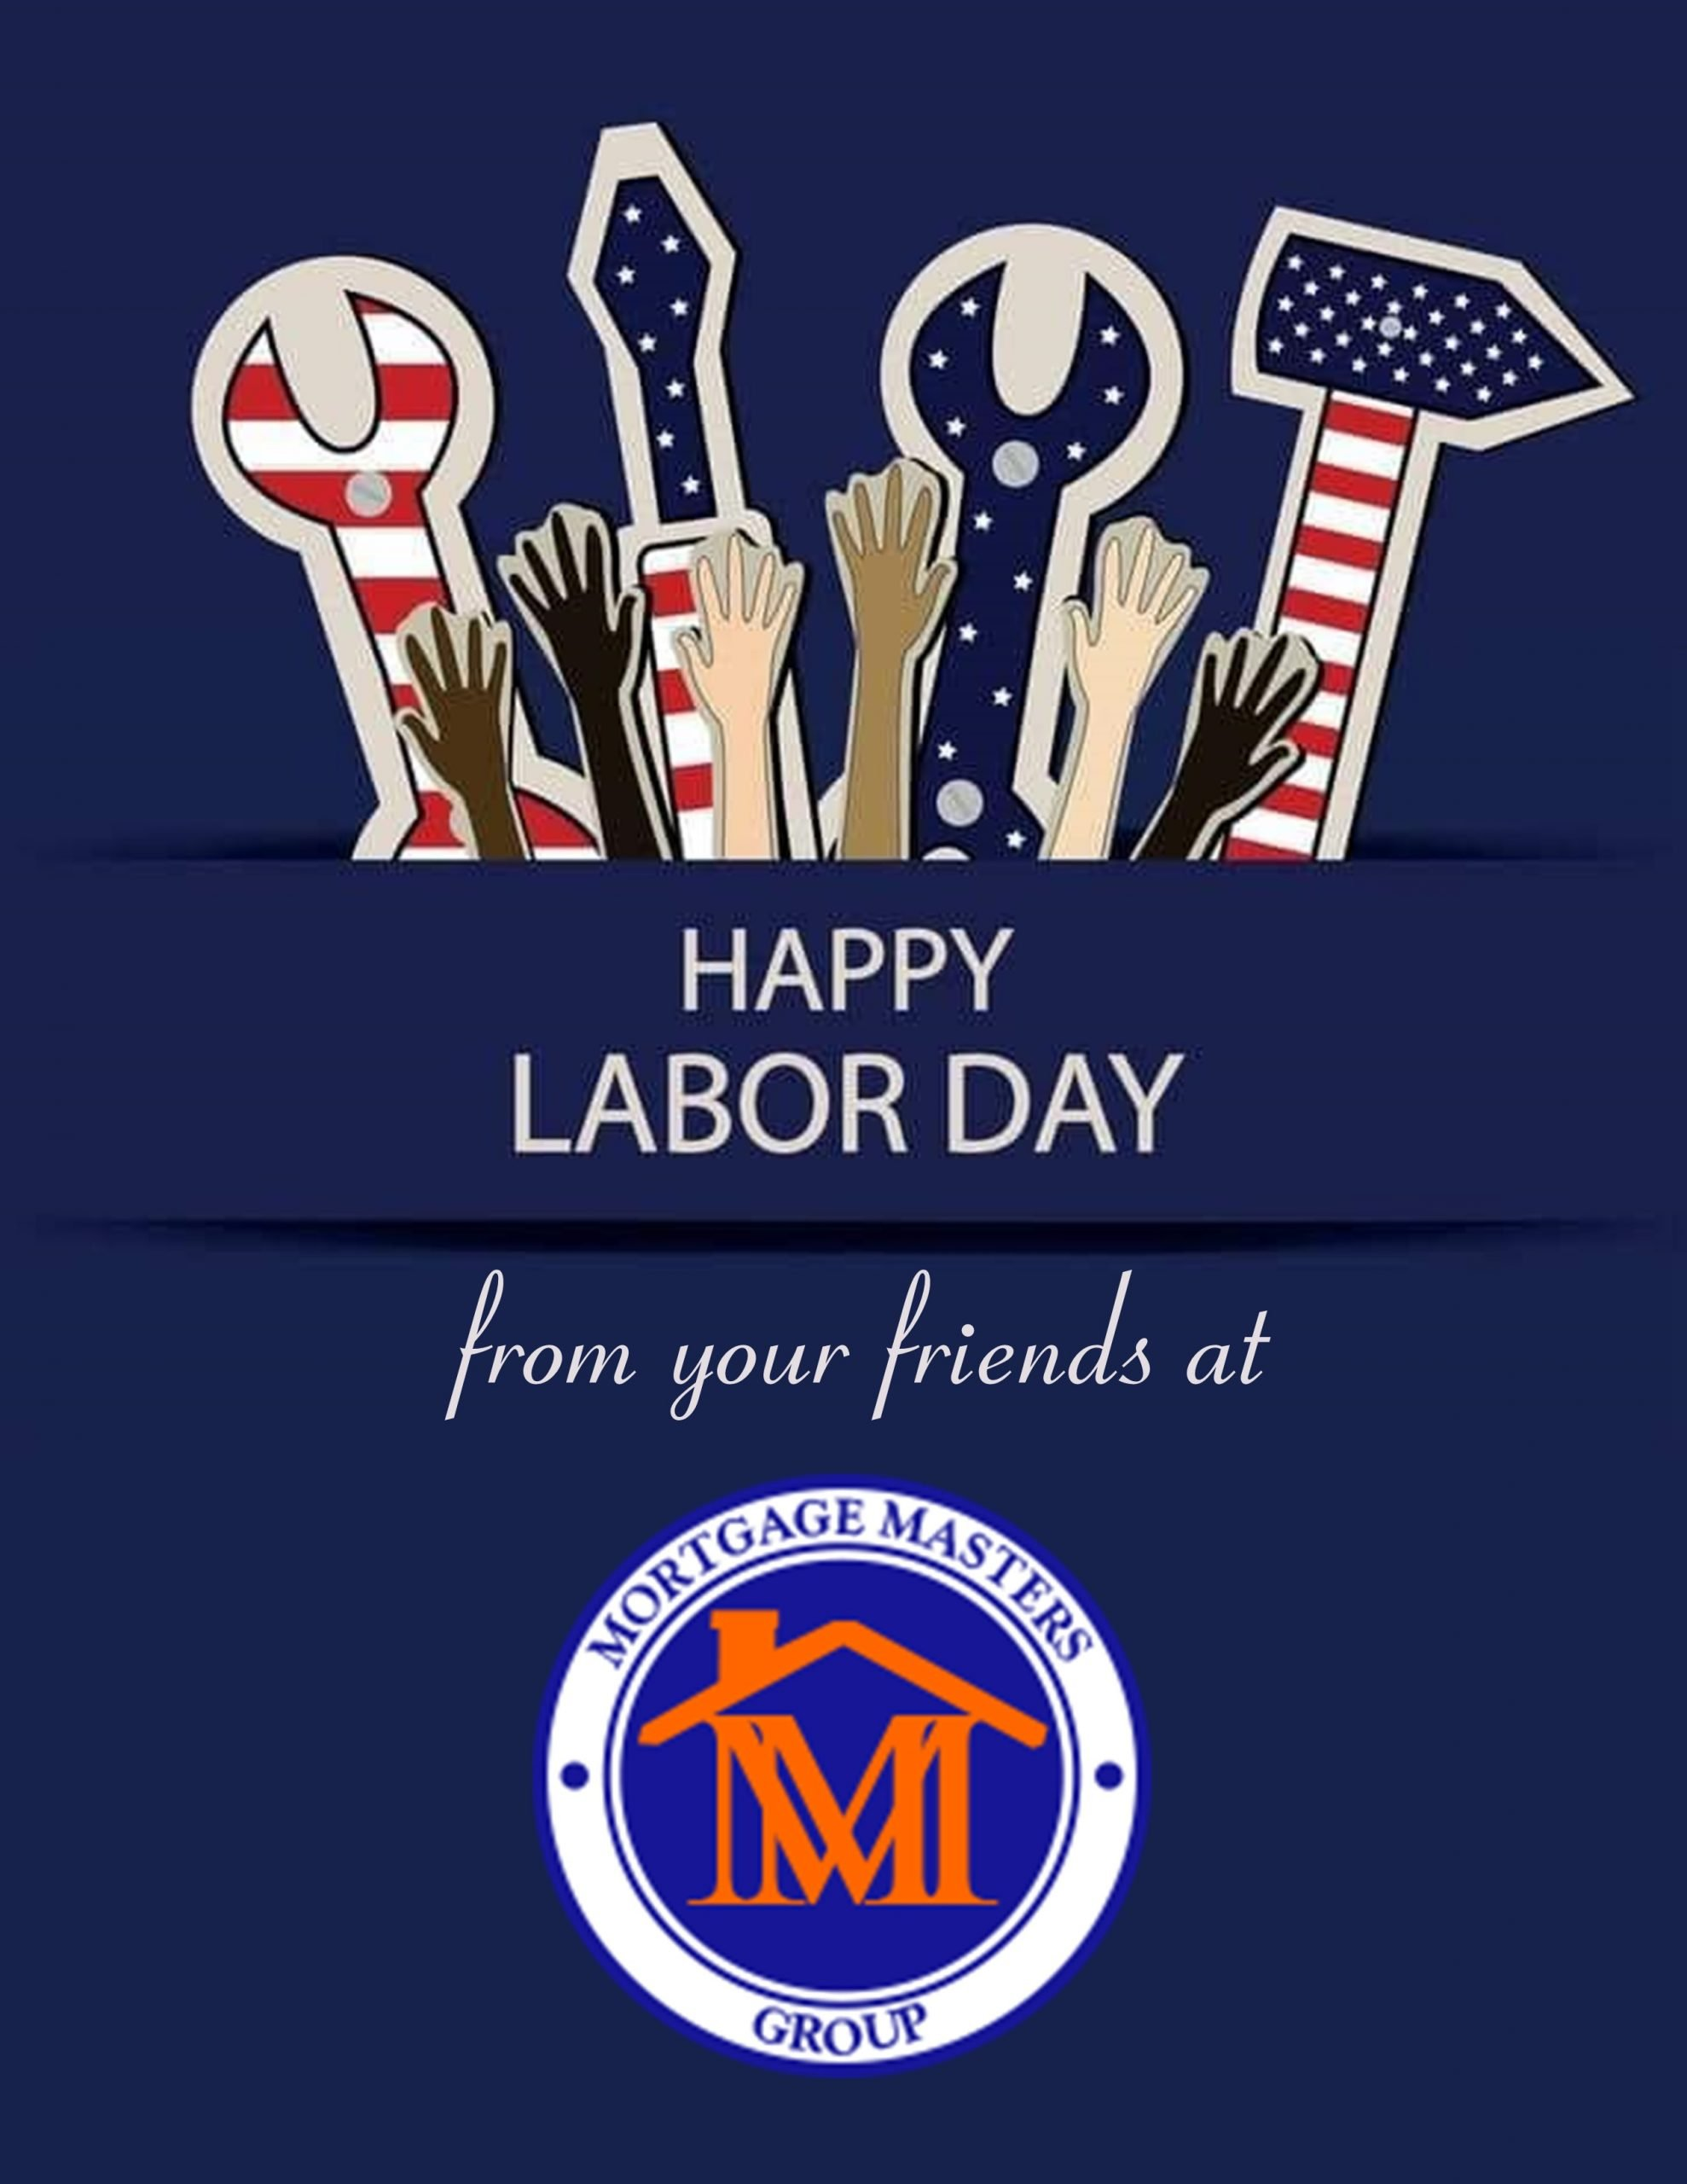 Happy Labor Day from your Friends at Mortgage Masters Group